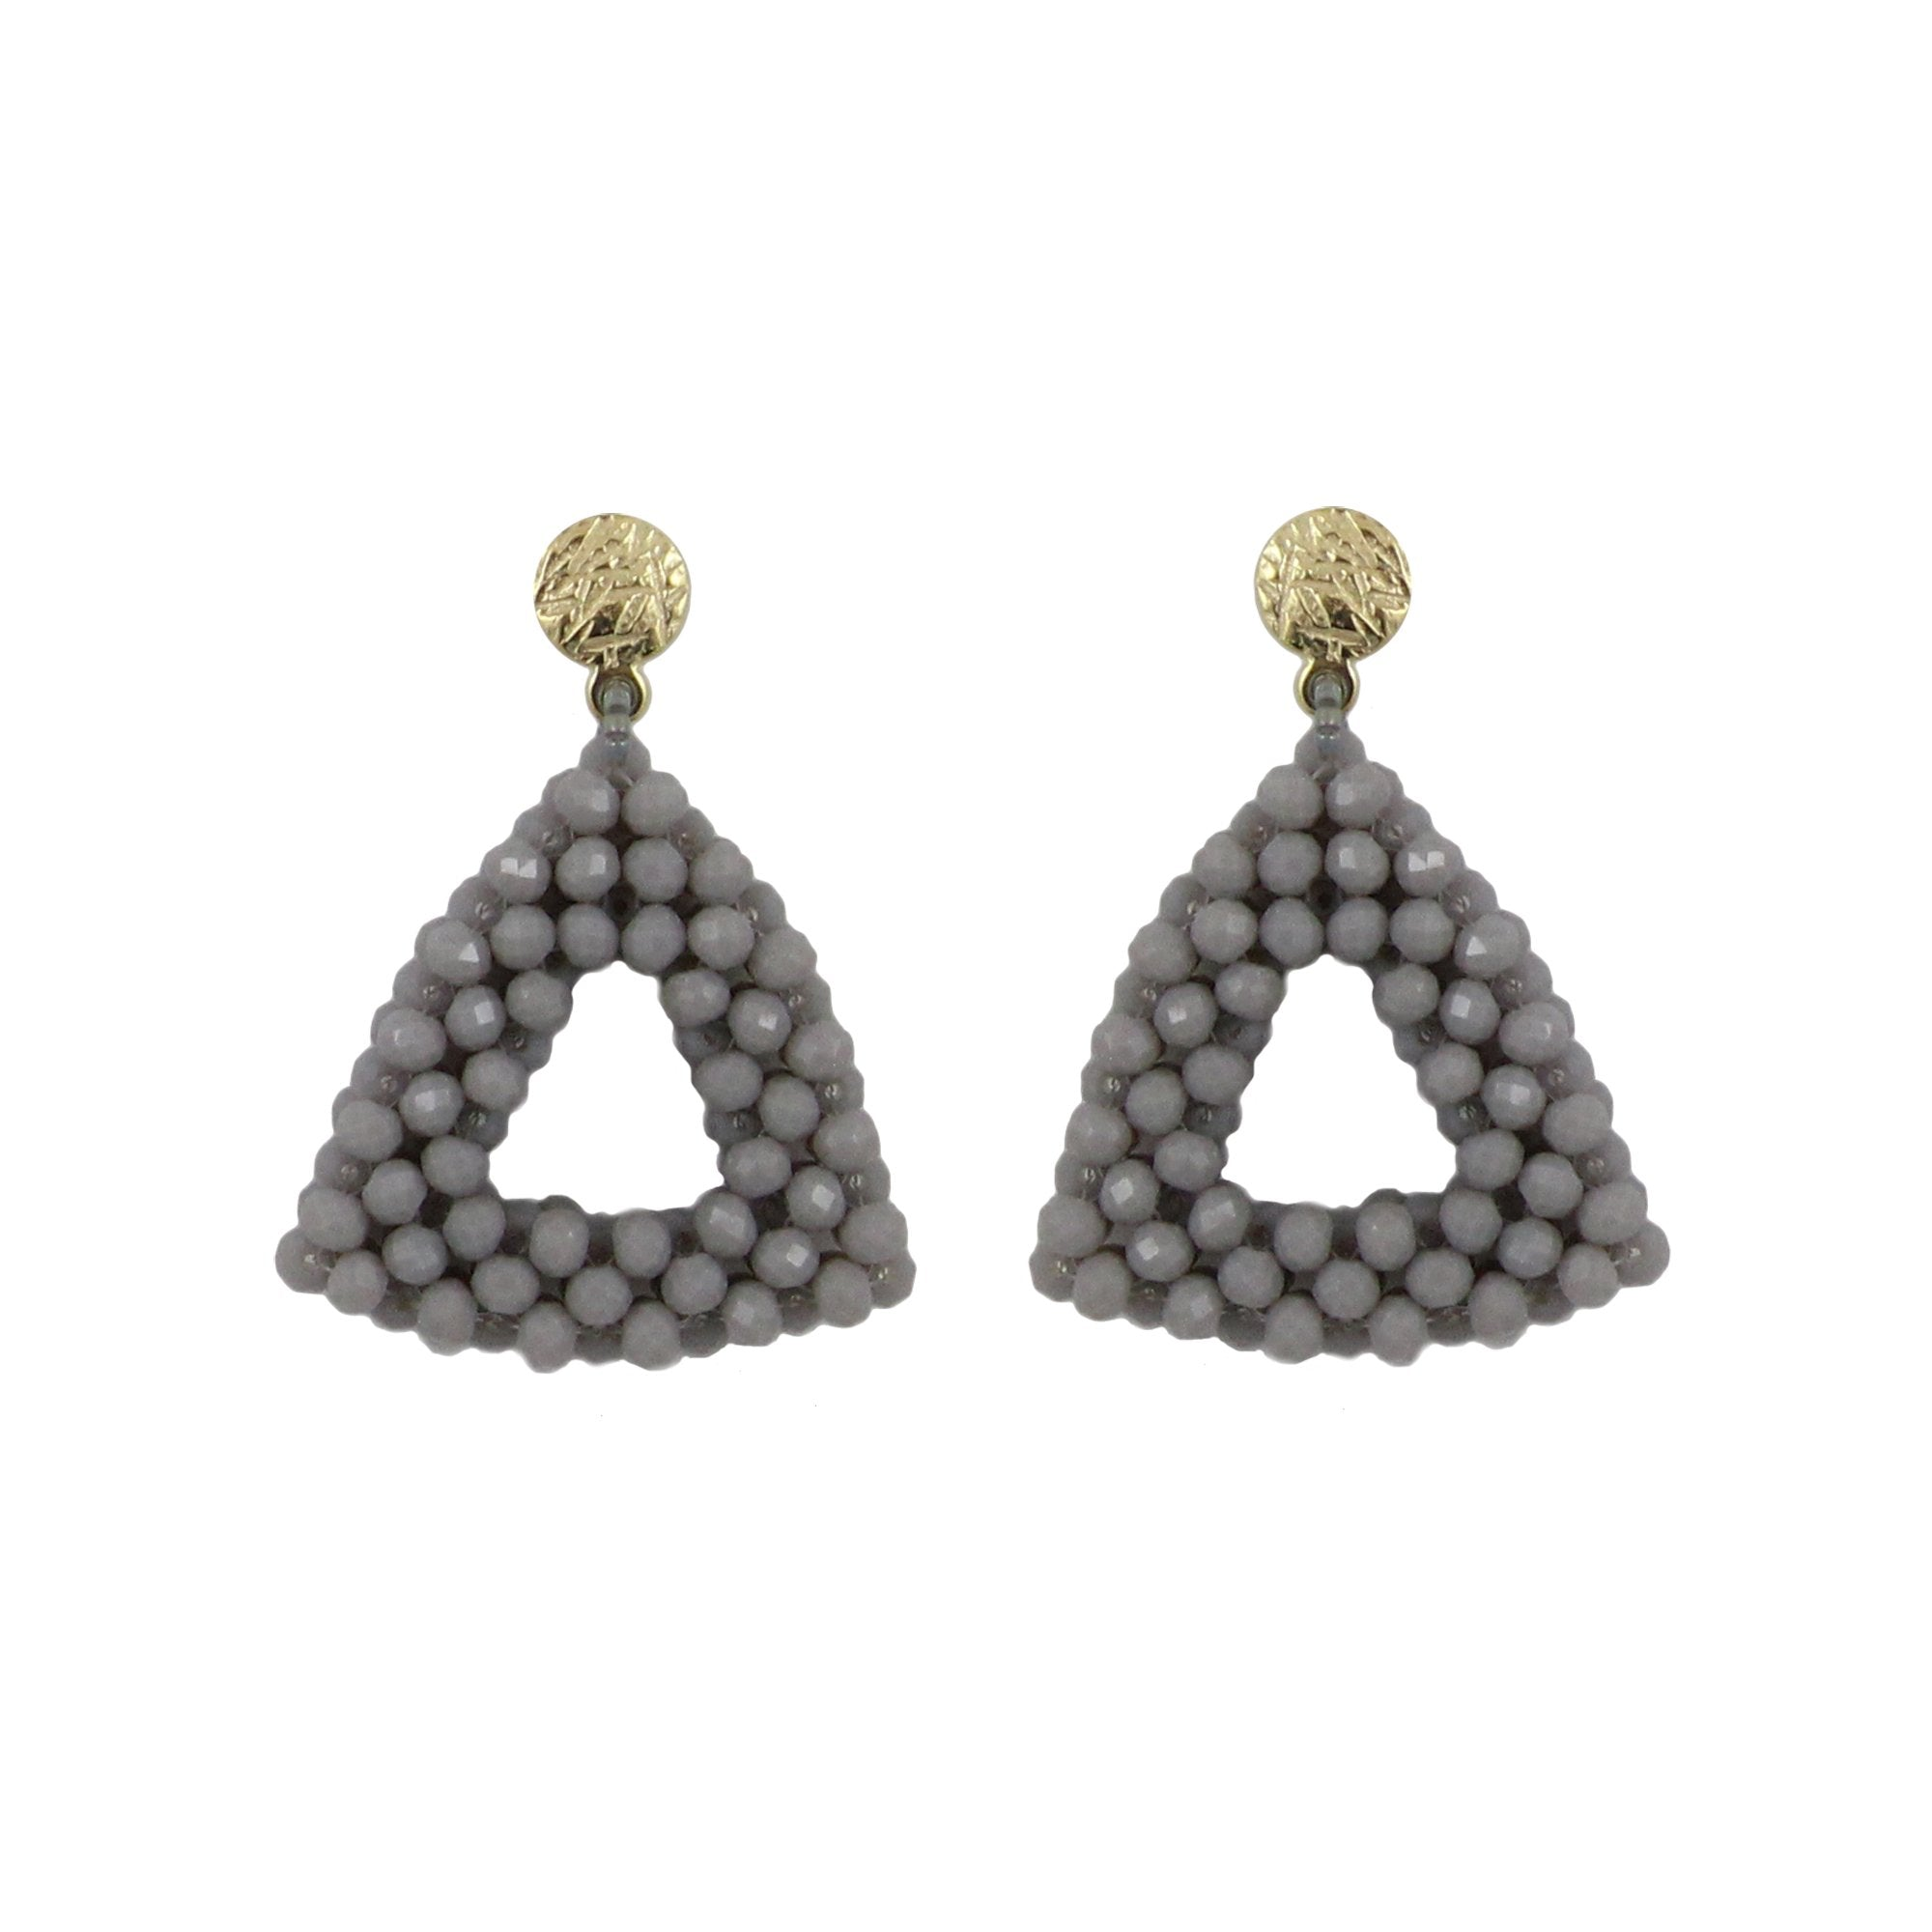 TRI earrings - 40% OFF